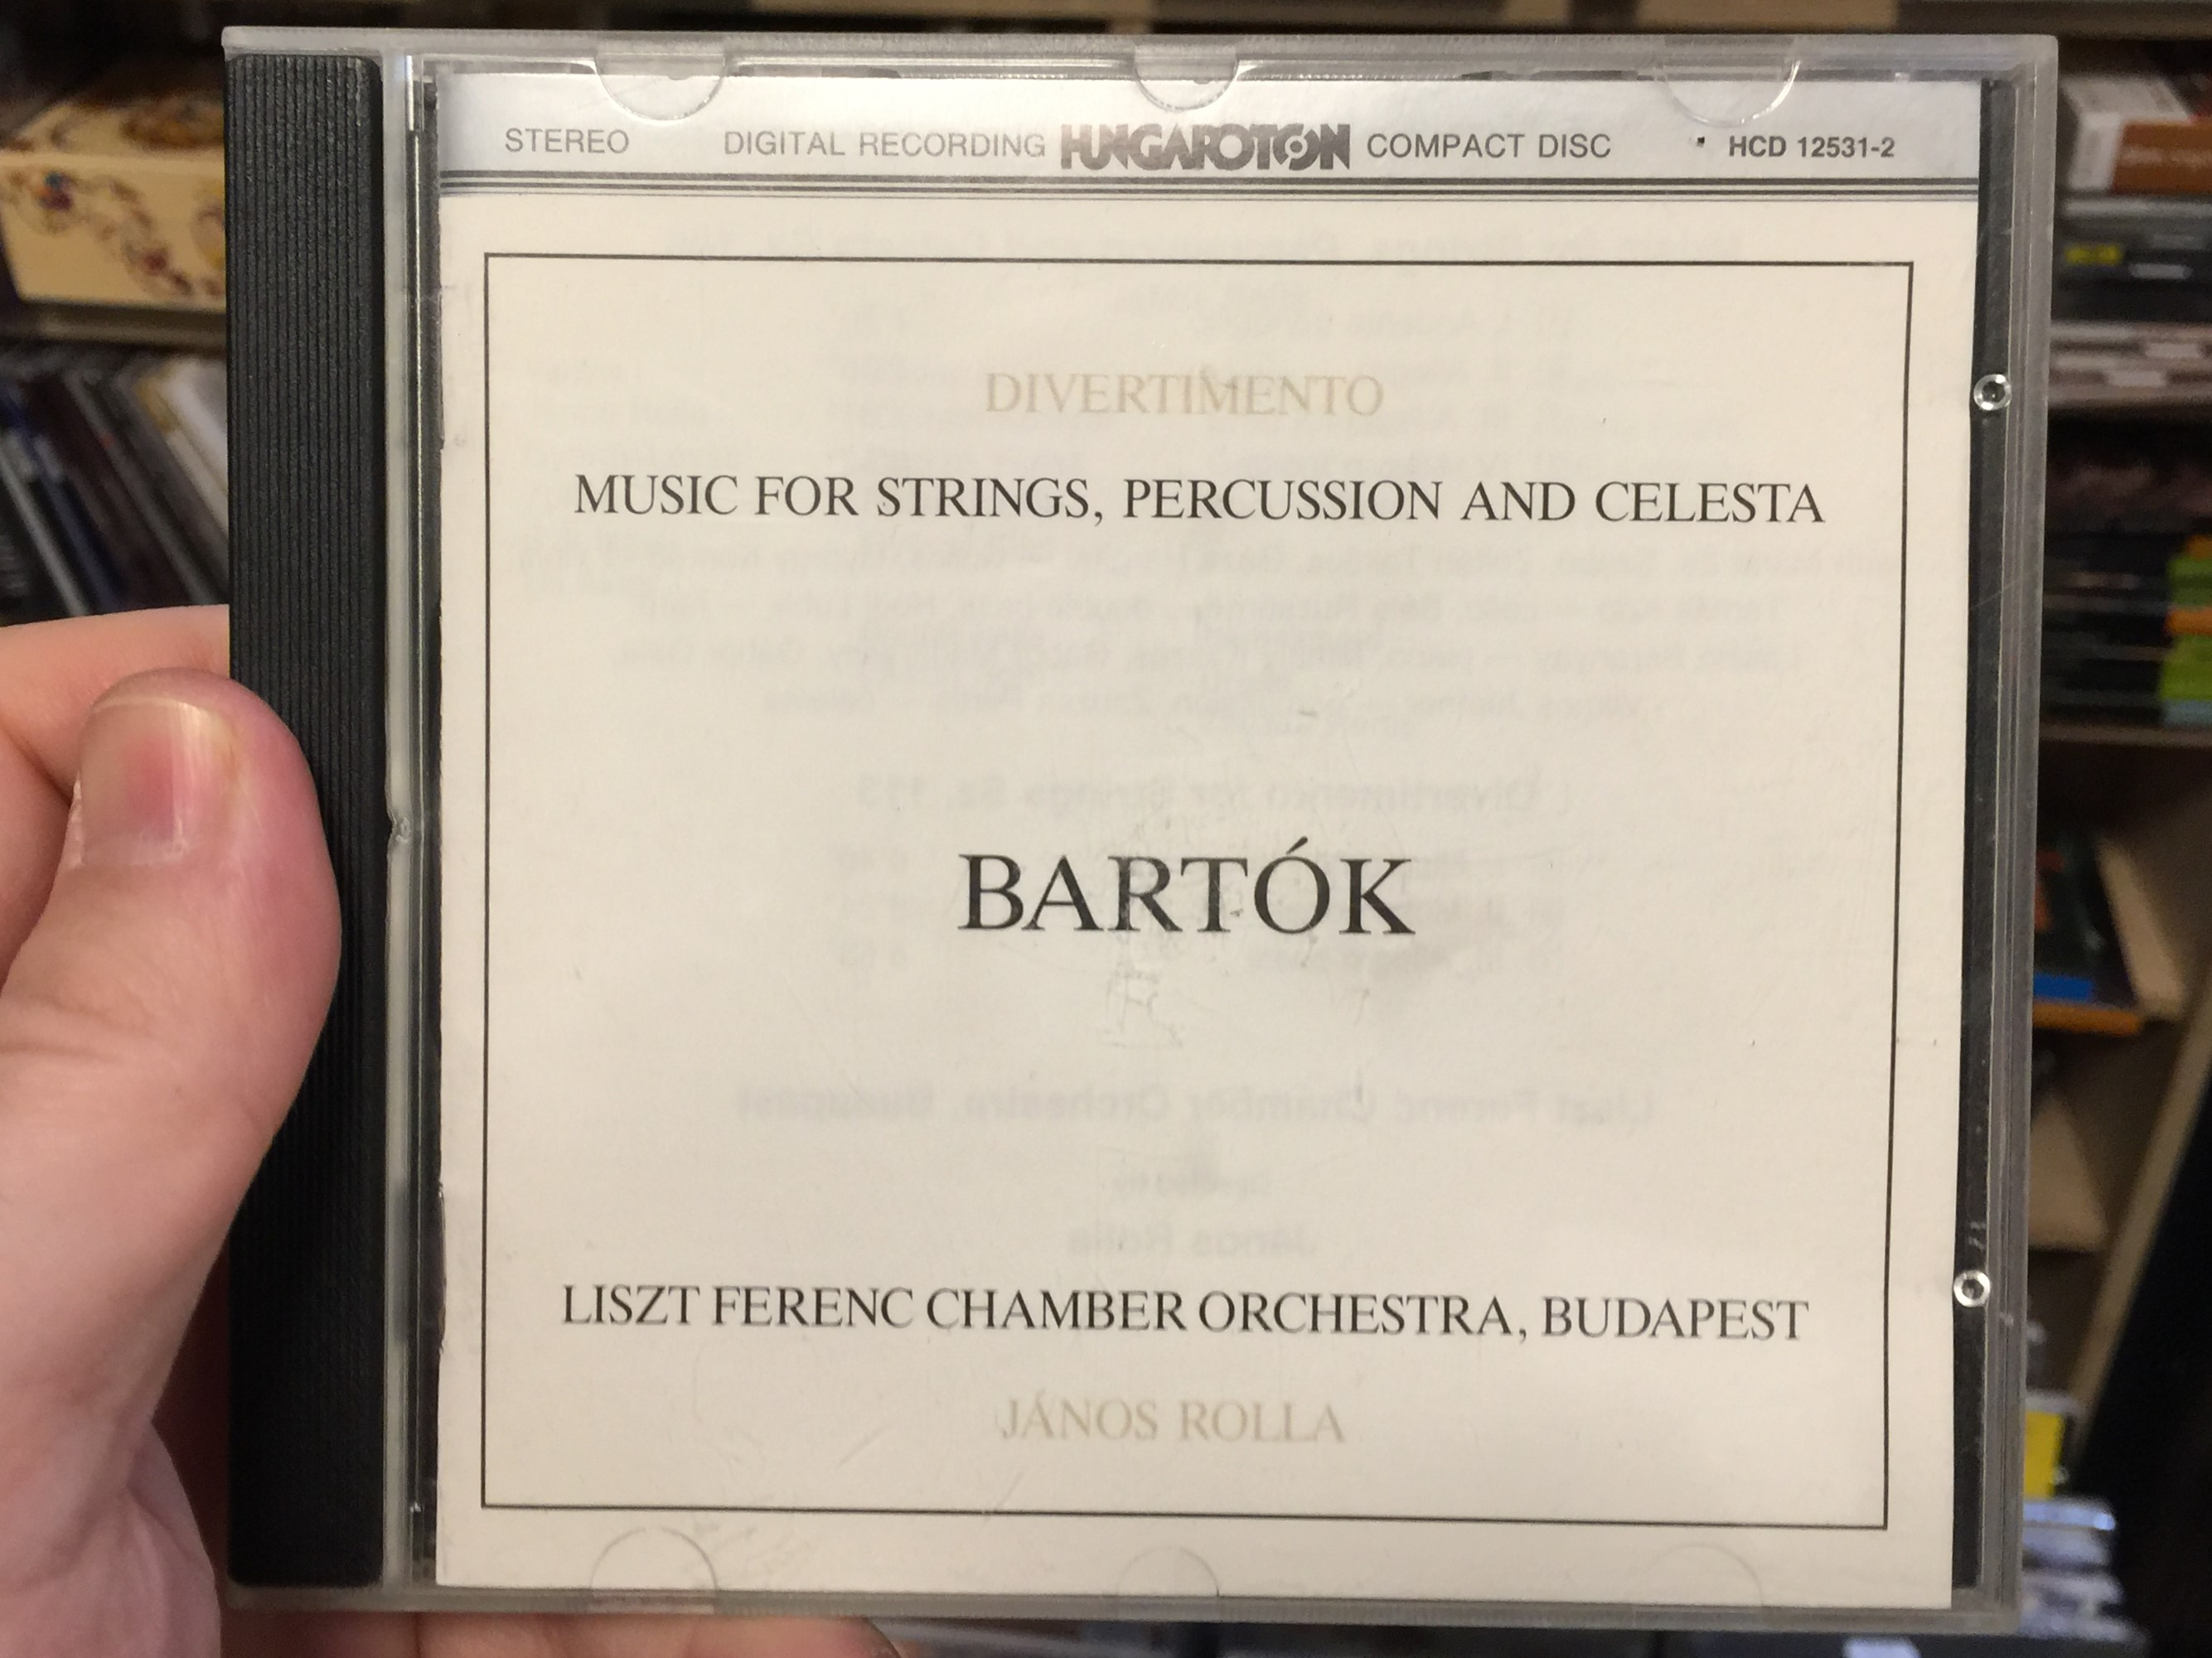 divertimento-music-for-strings-percussion-and-celesta-bart-k-liszt-ferenc-chamber-orchestra-budapest-j-nos-rolla-hungaroton-audio-cd-1984-stereo-hcd-12531-2-1-.jpg